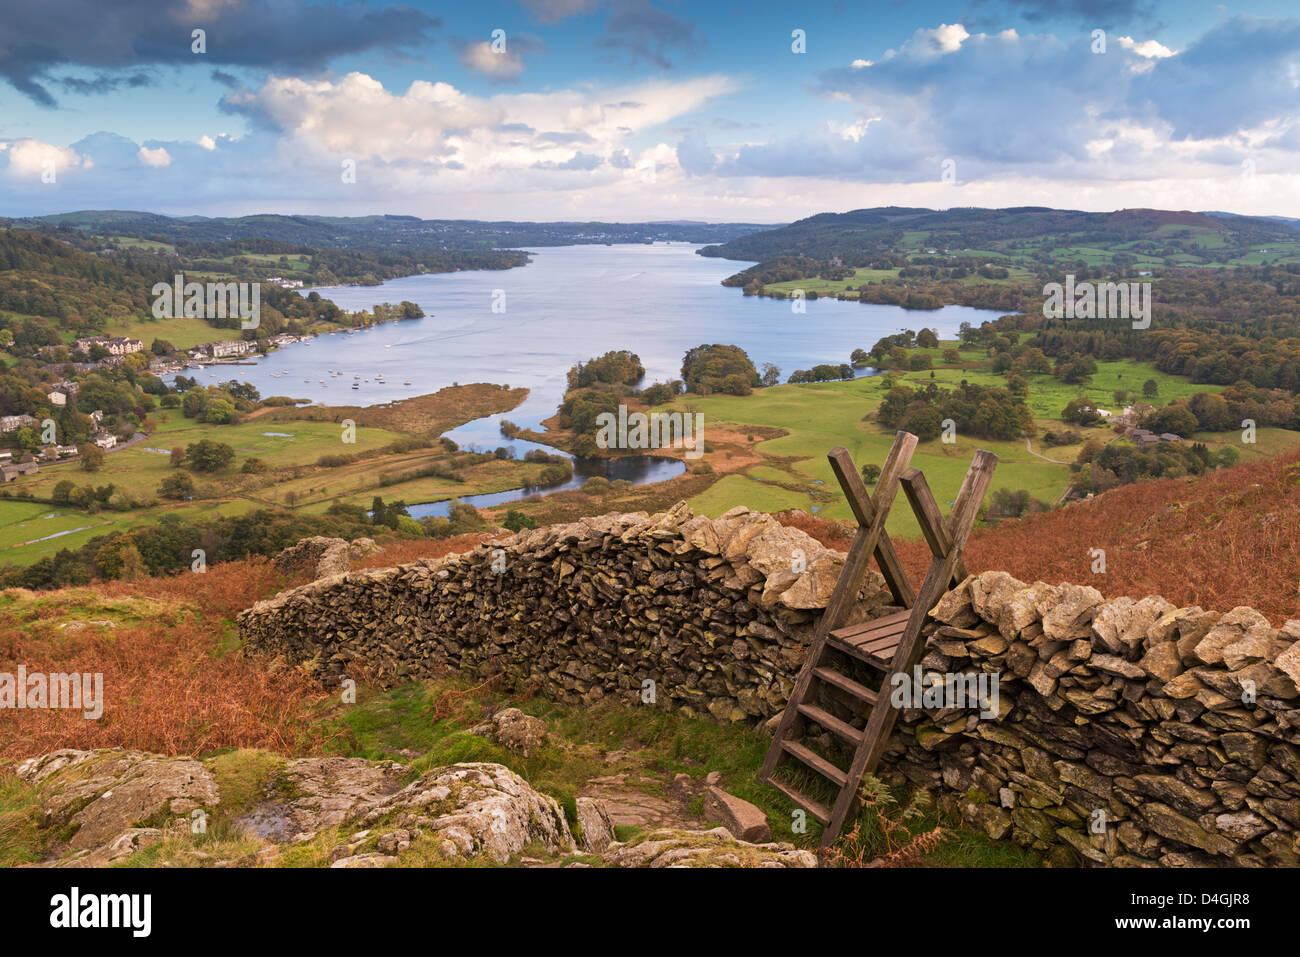 Drystone Wall and stile with views to Windermere, Lake District, Cumbria, England. Autumn (October) 2012. - Stock Image